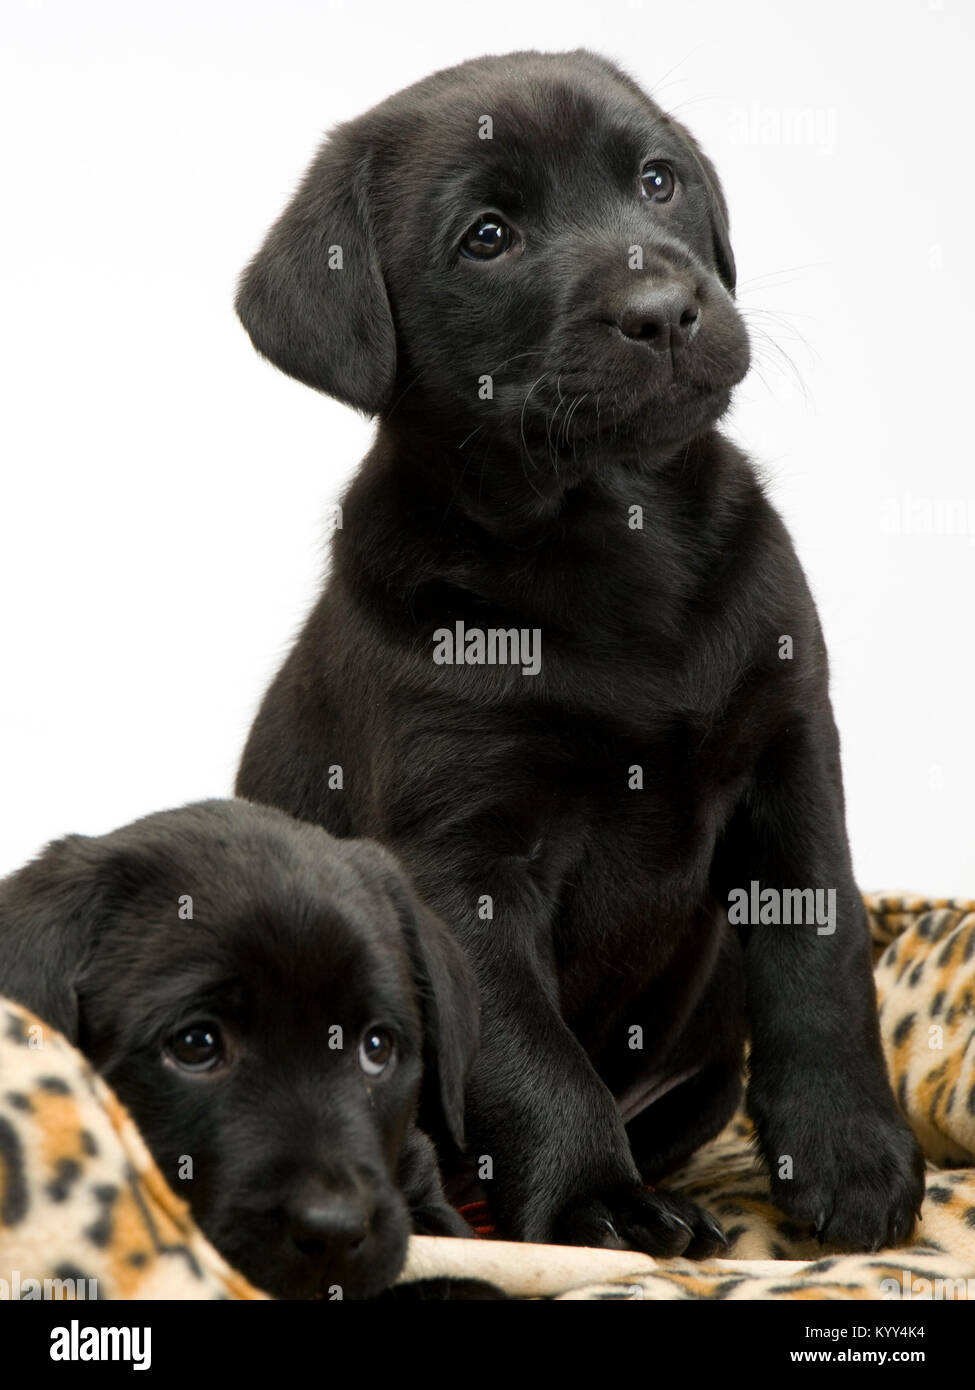 Two obedient young black labrador puppies on their bed waiting obediently - Stock Image